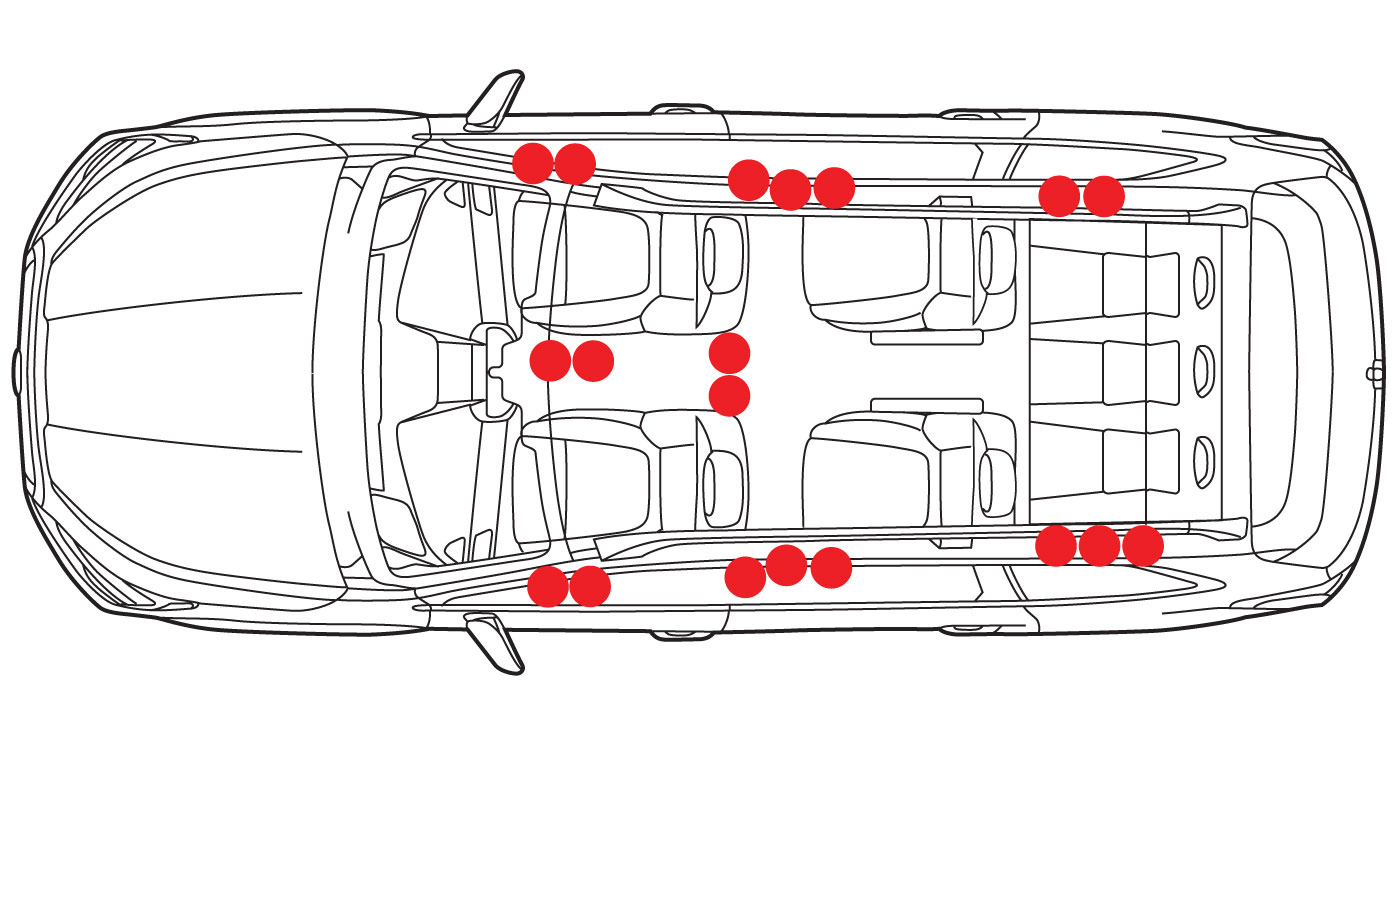 The Subaru Ascent Will Have 19 Cup Holders